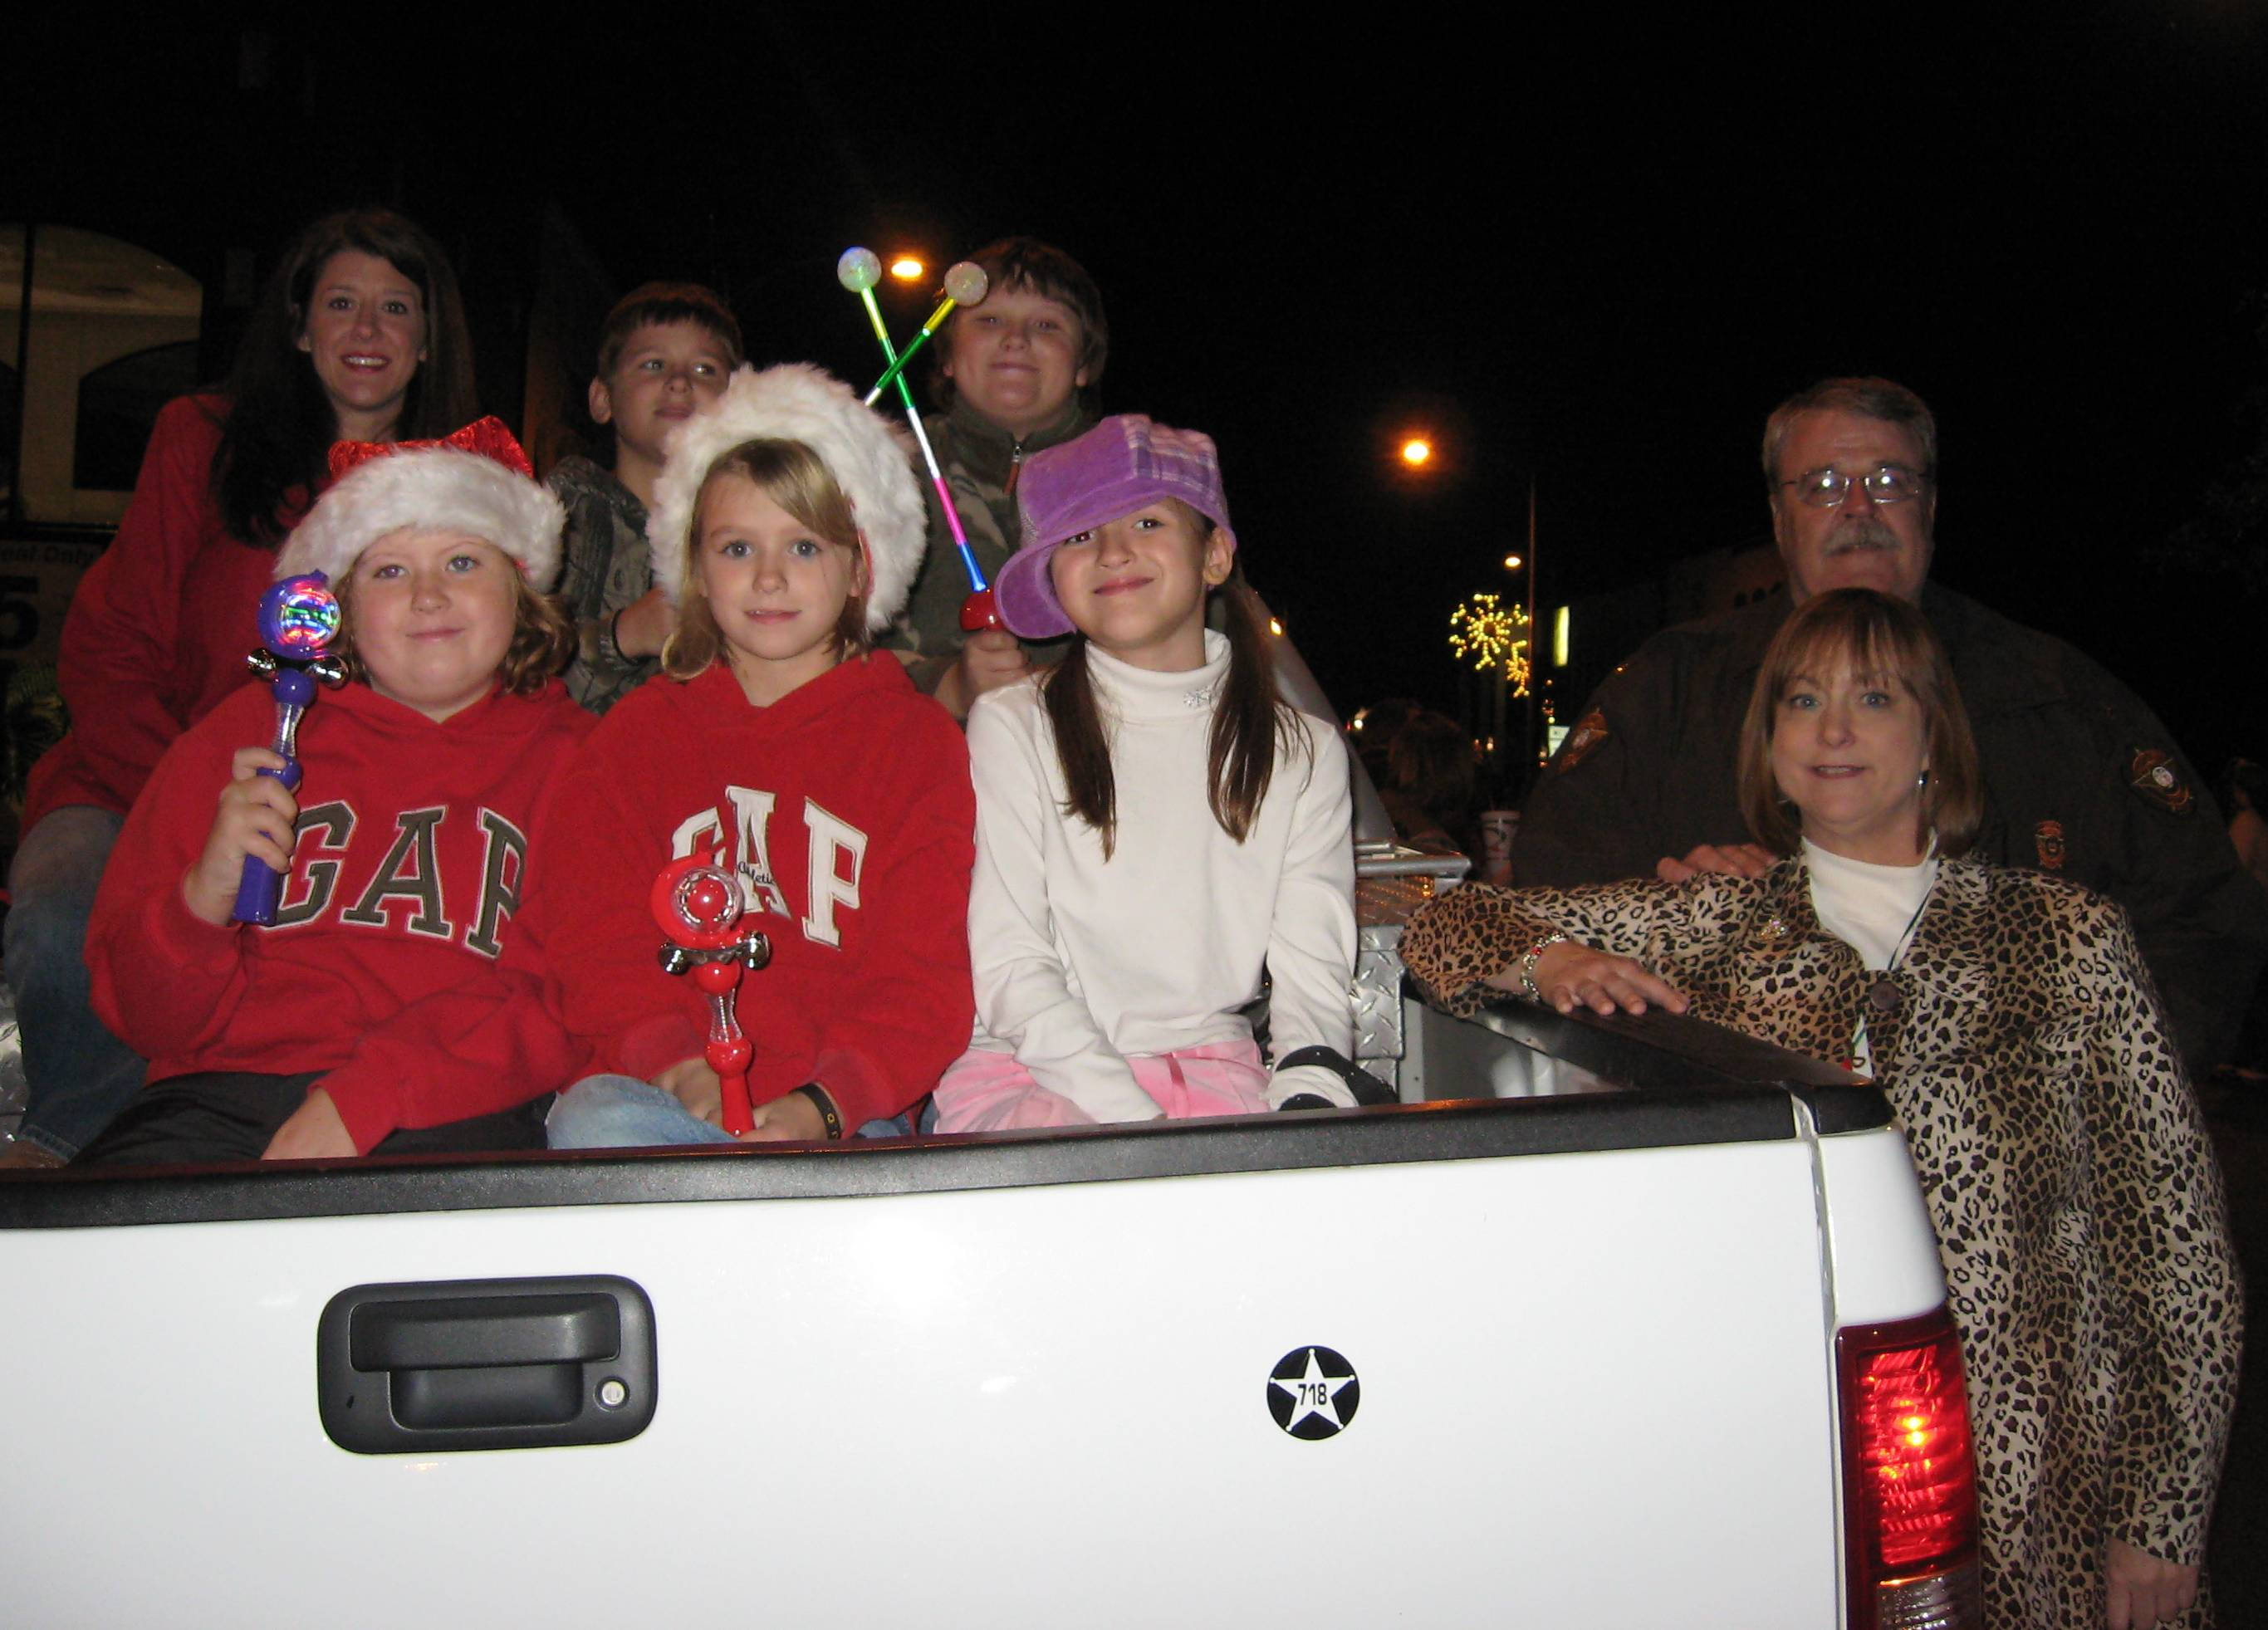 christmasparade2007-006.jpg